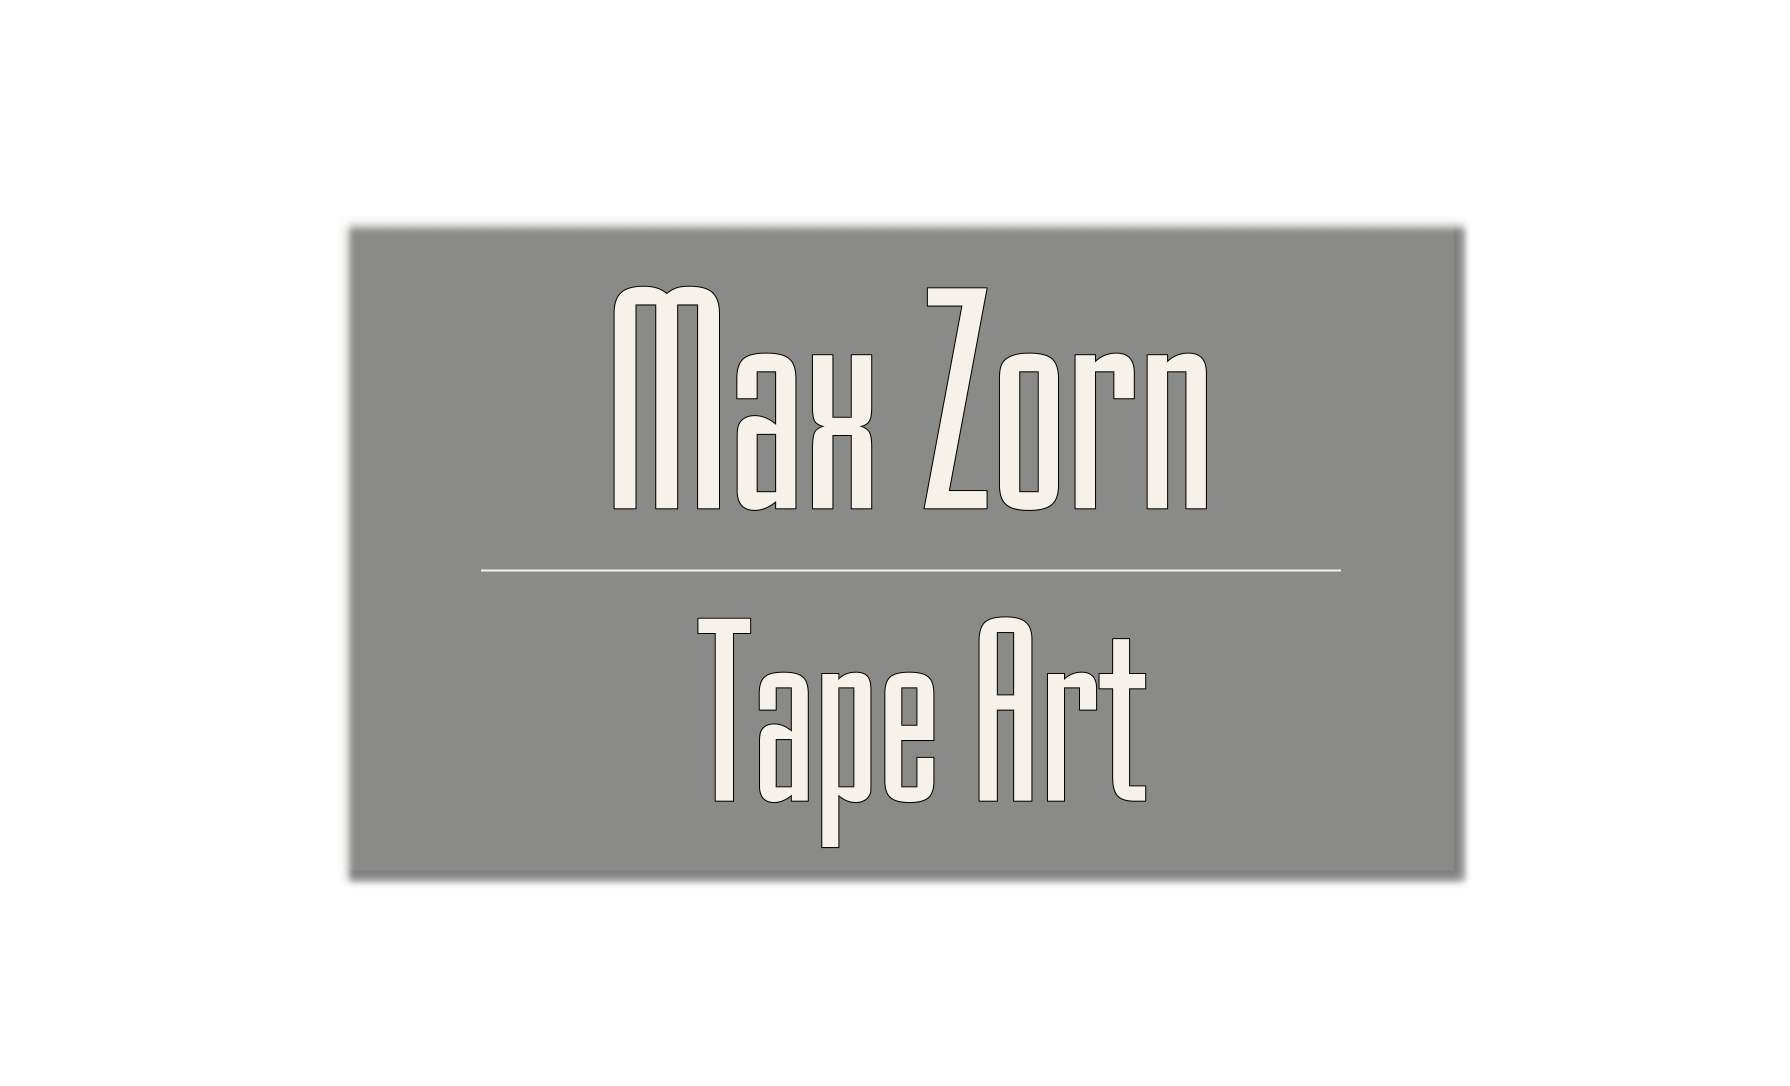 Max Zorn, Amsterdam Street Artist, creating Tape Art to beautify street lamps